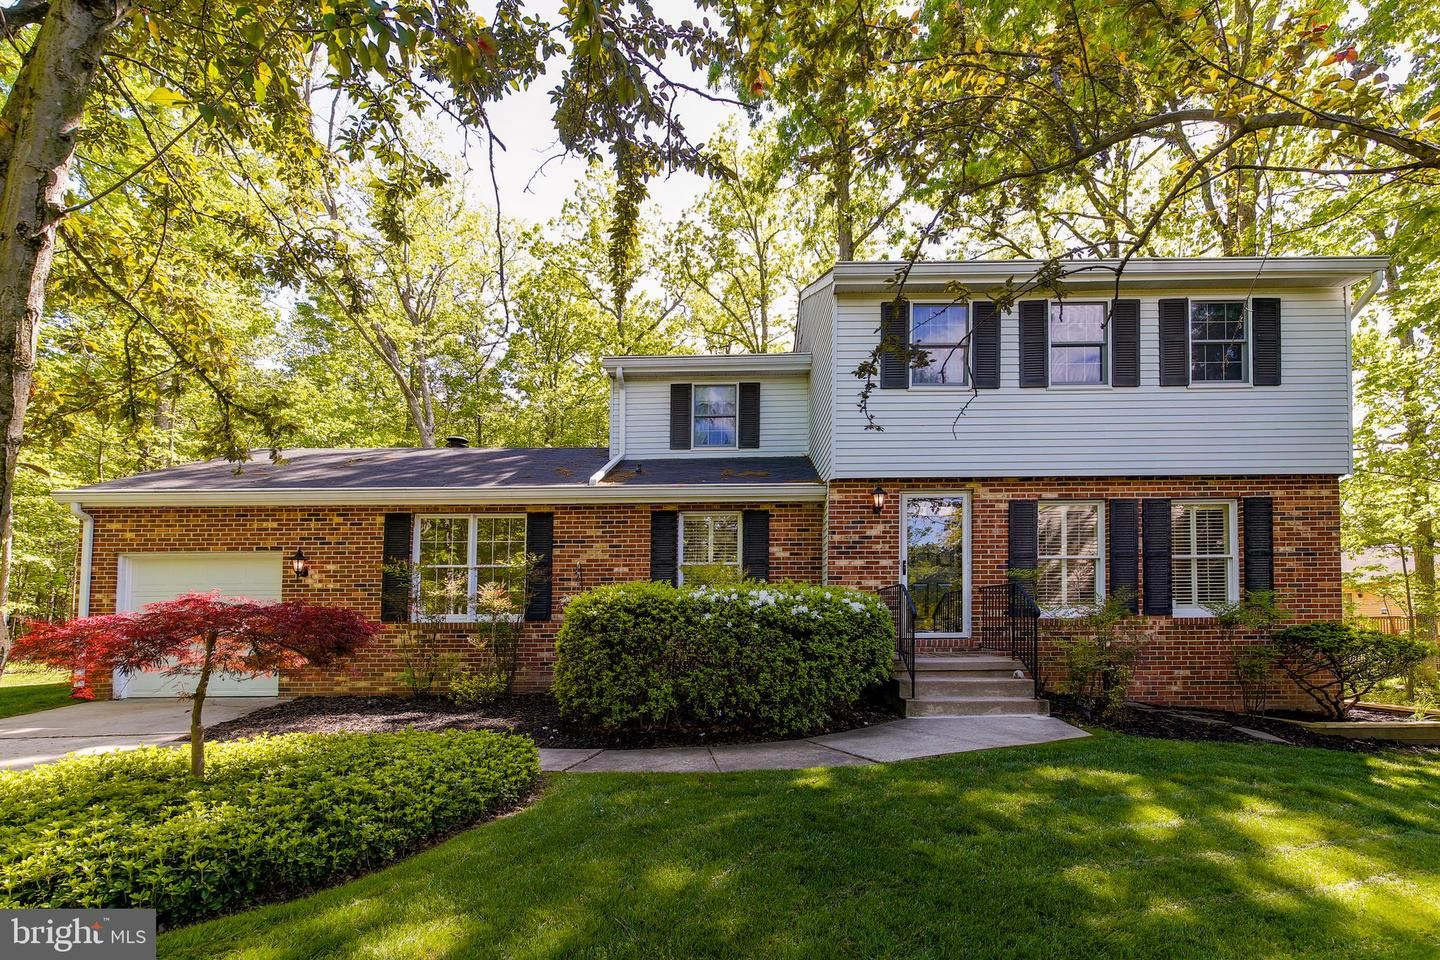 18 HELMS PICK CT, Baltimore, MD 21228 - MLS#: MDBC527104